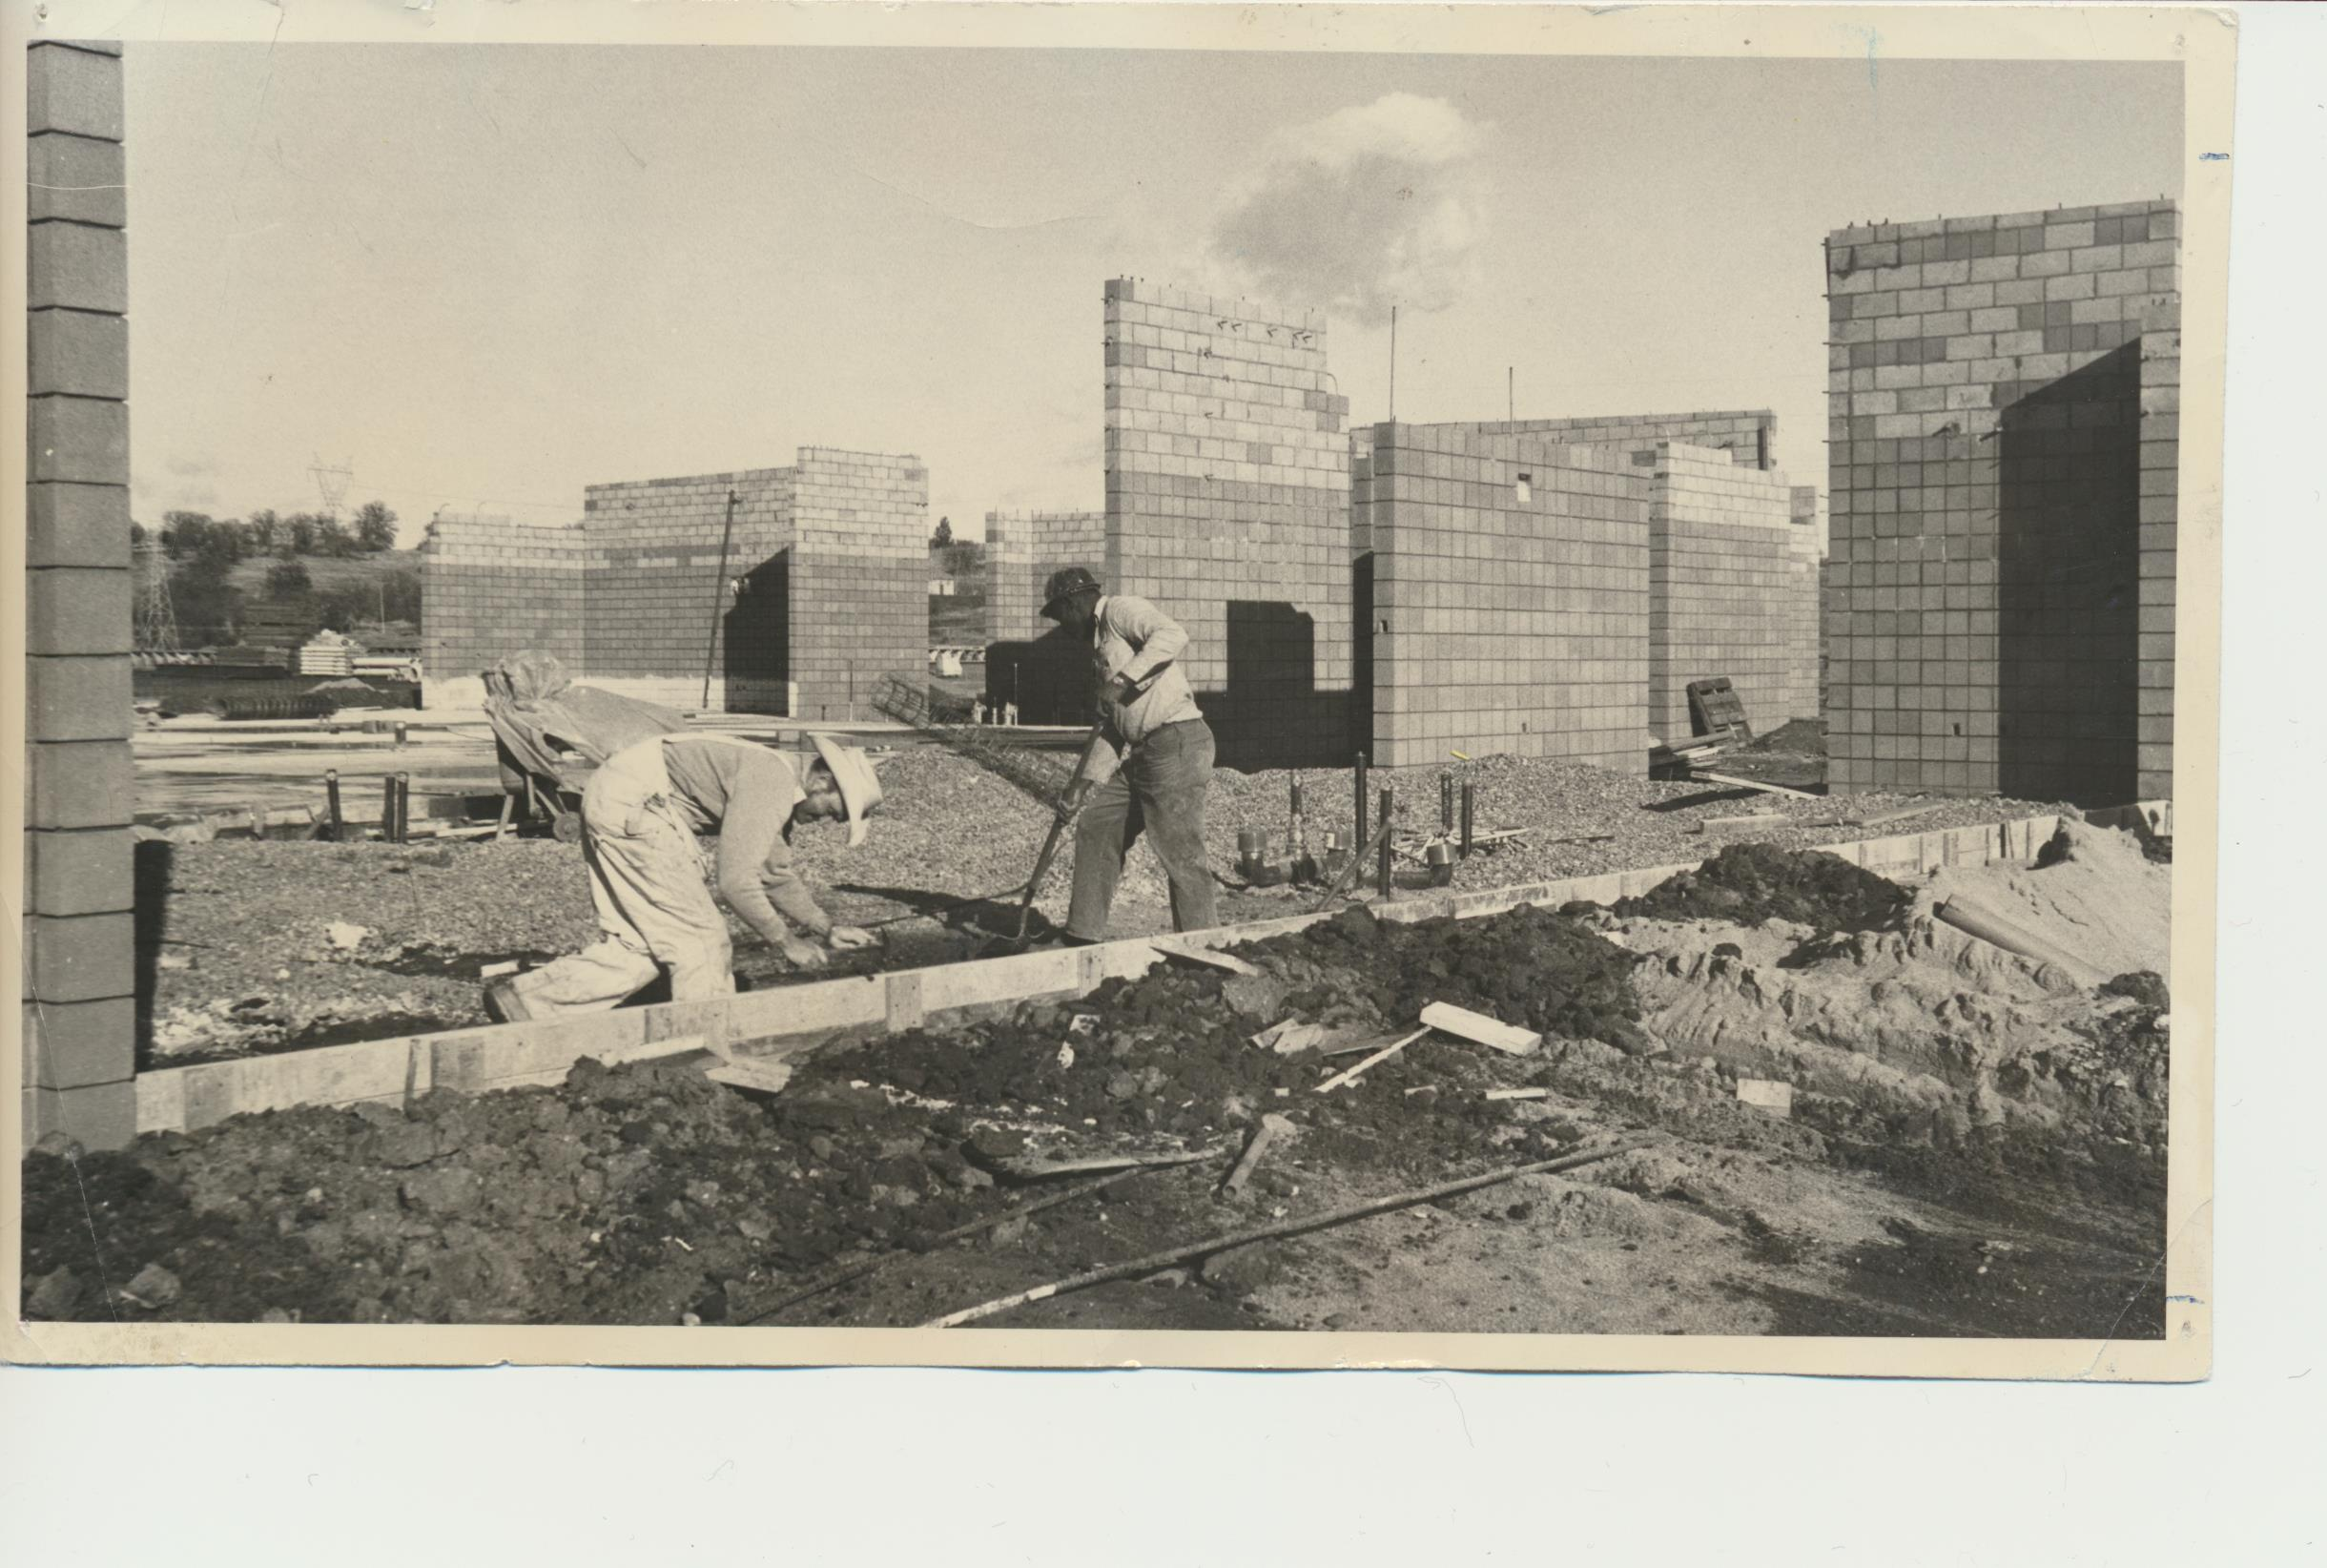 1508511300-old_photo_of_two_workmen_building_wyandotte